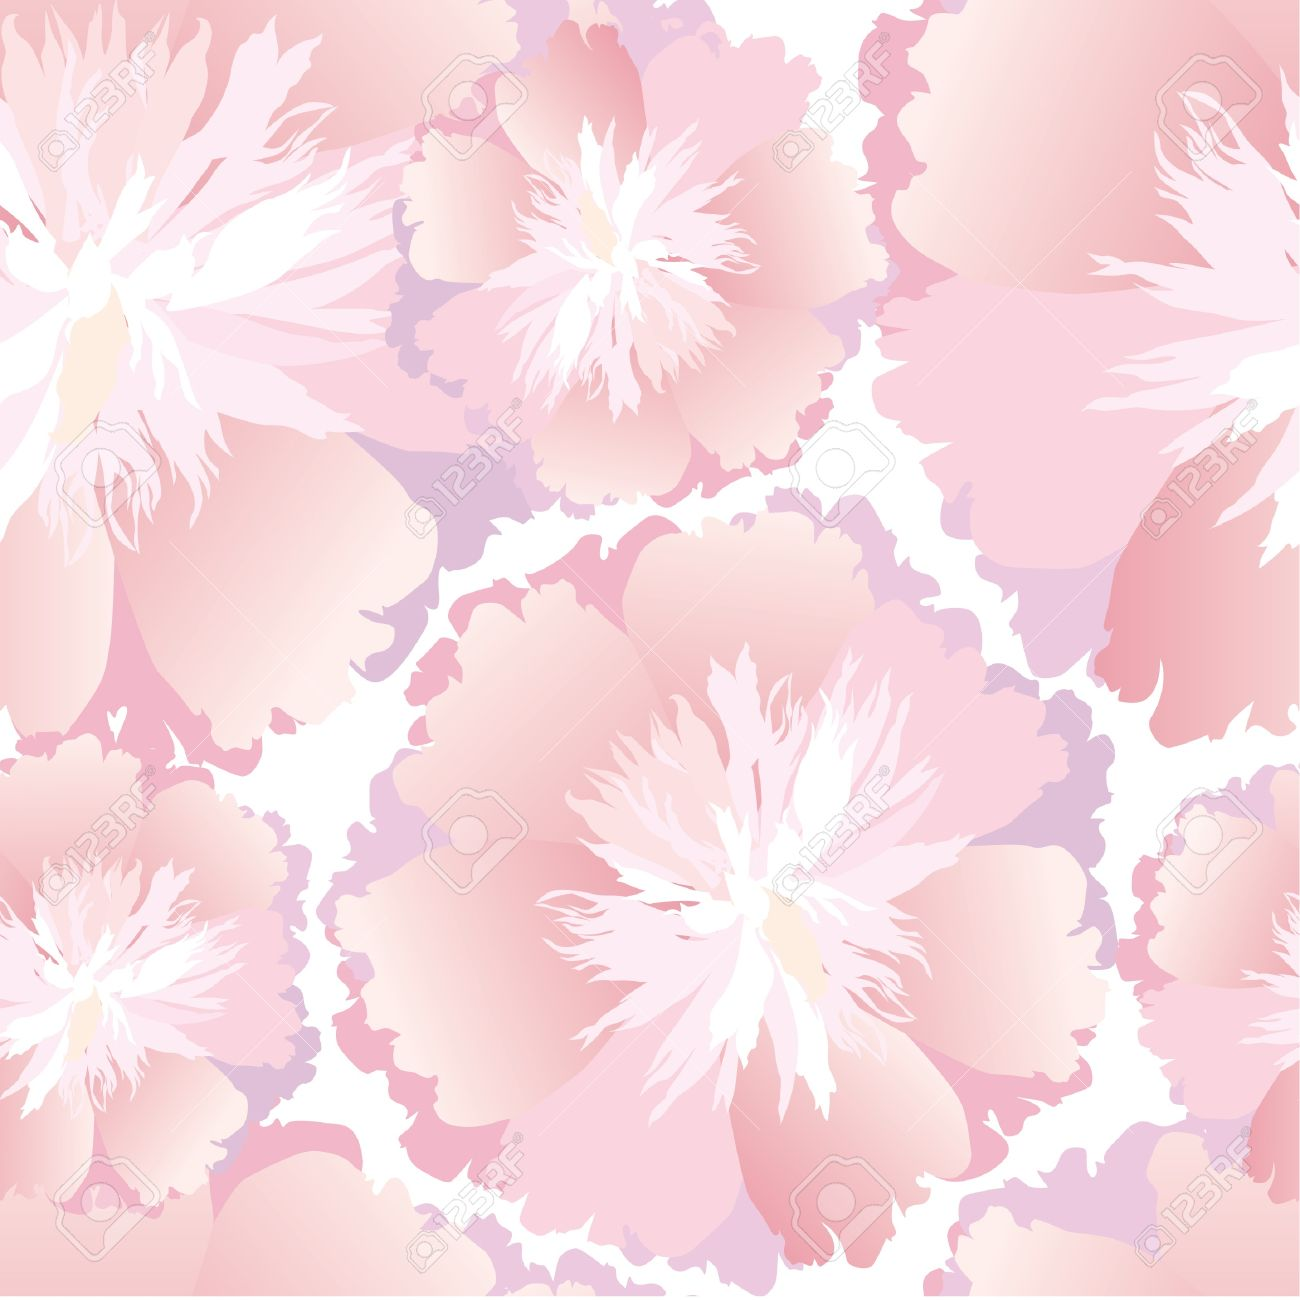 Floral seamless pattern white and pink flower background royalty floral seamless pattern white and pink flower background stock vector 16139988 mightylinksfo Choice Image